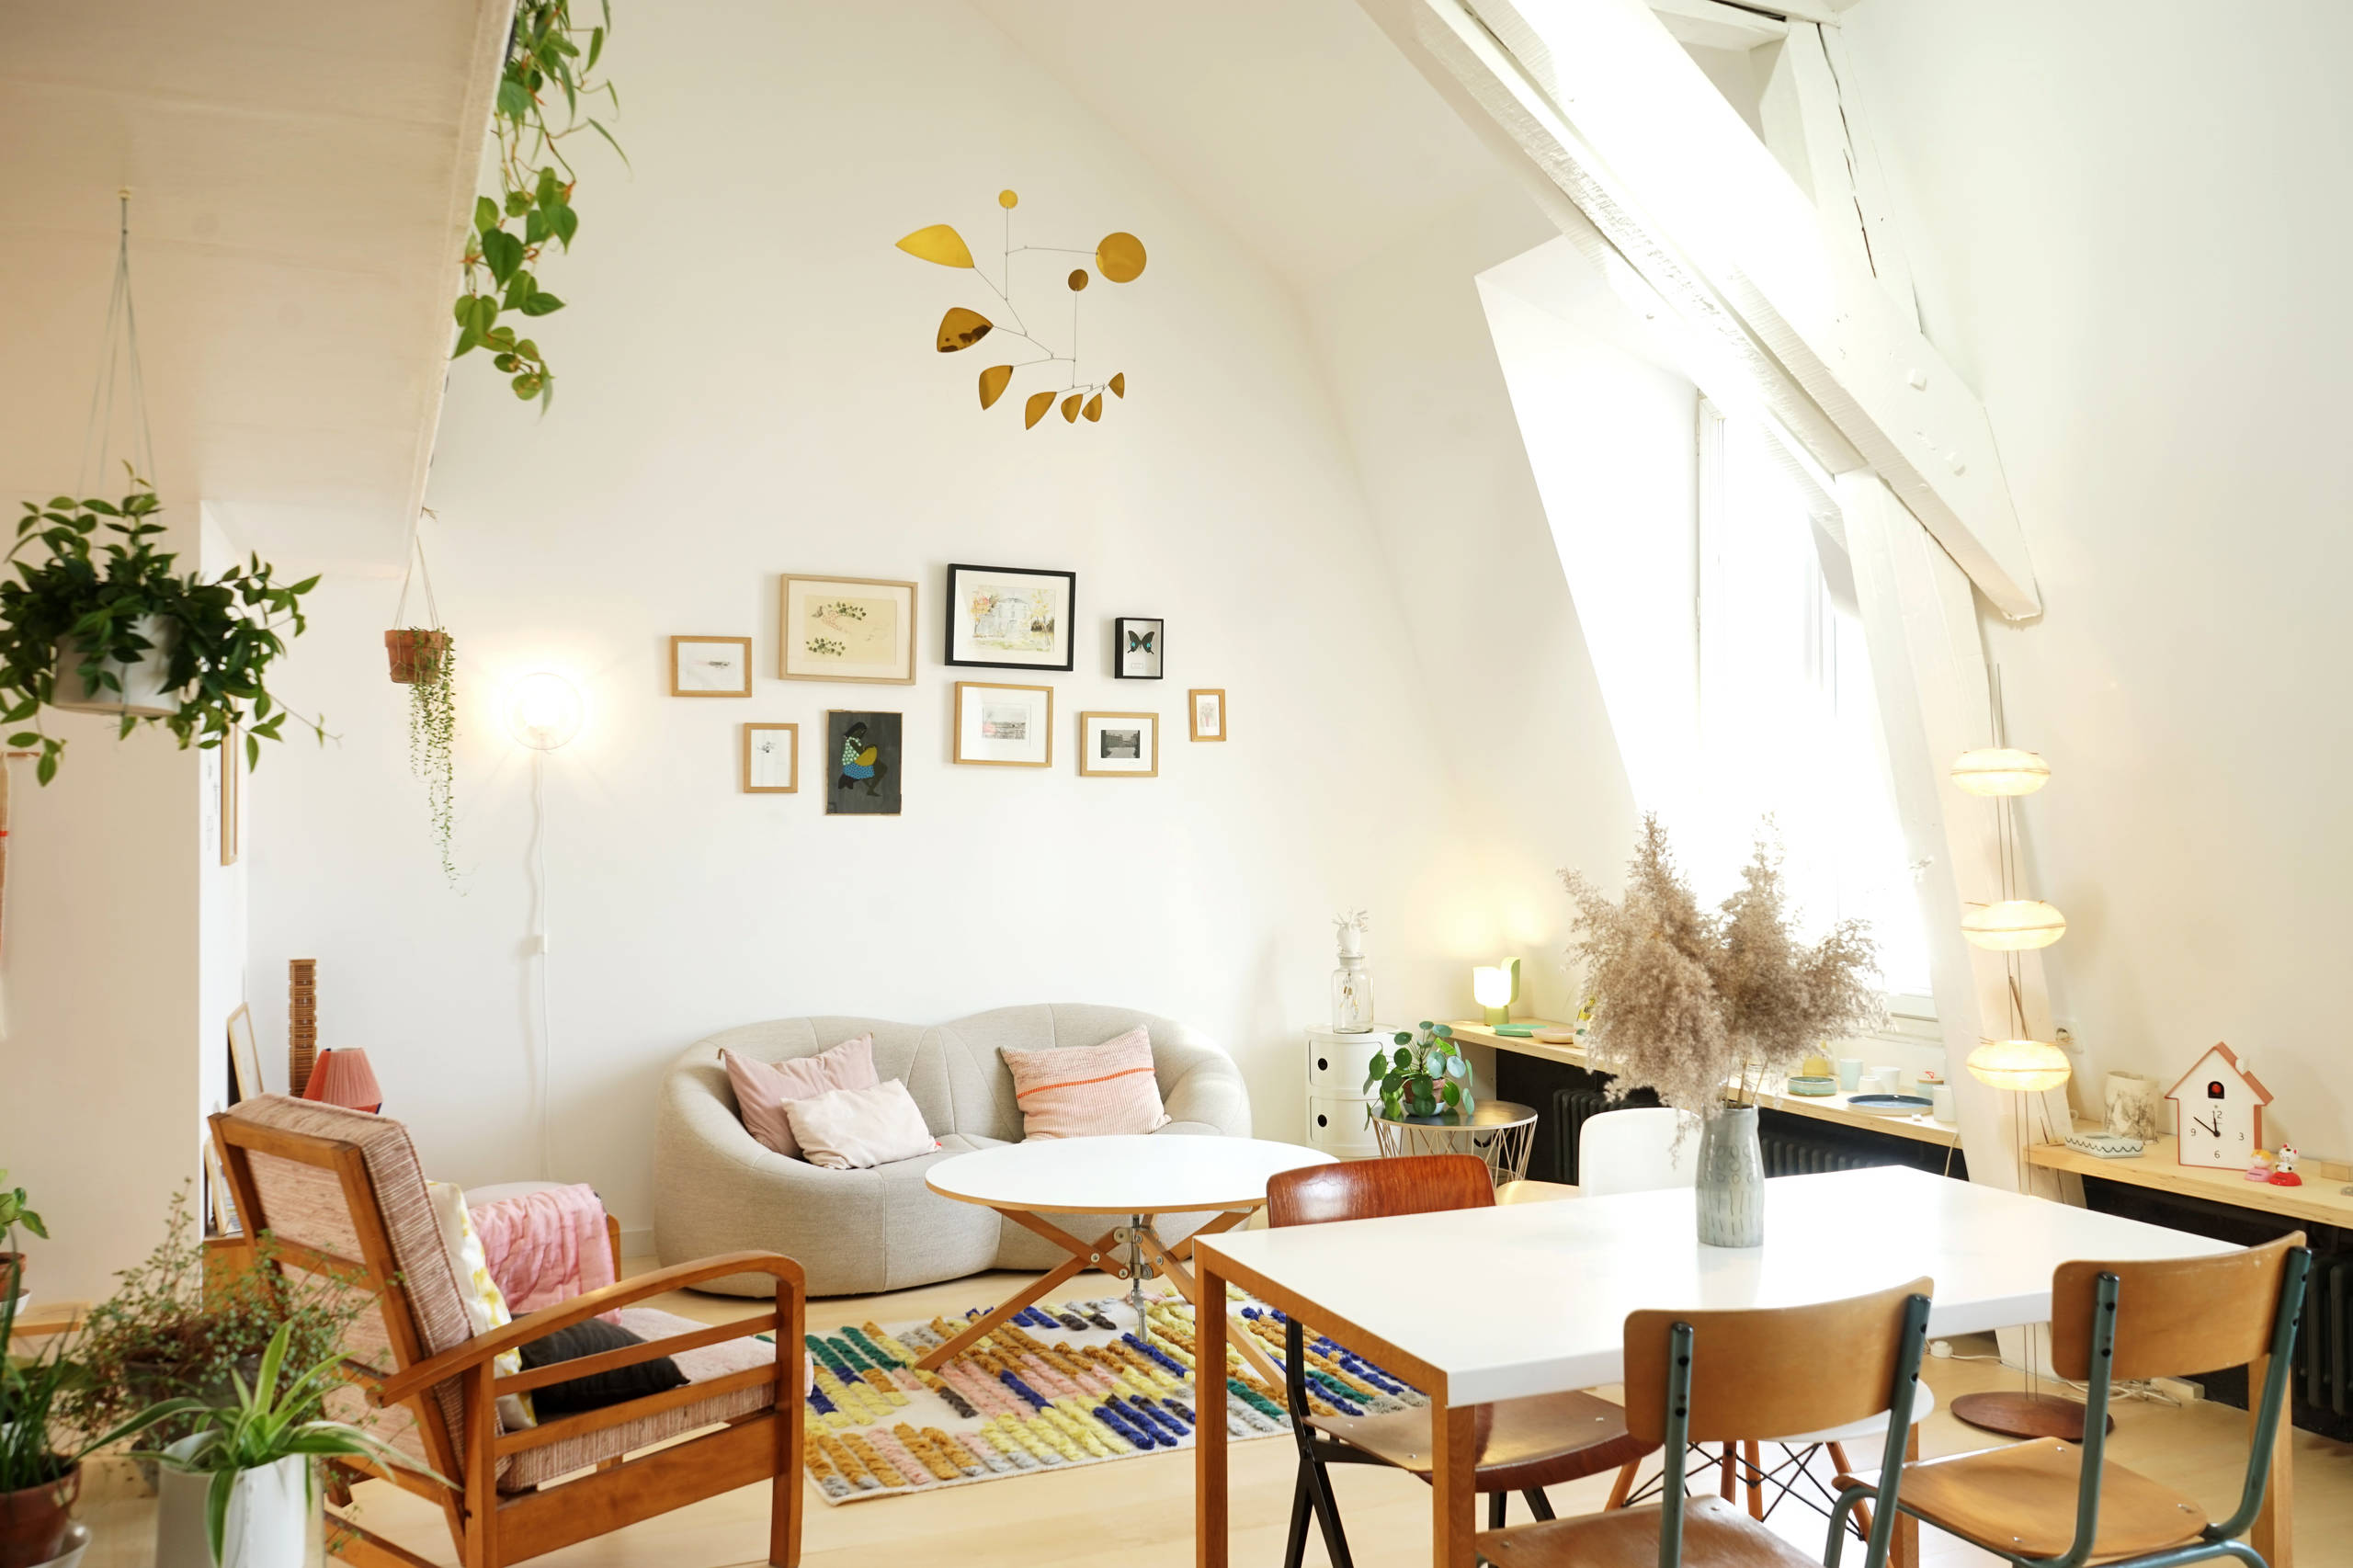 75 Beautiful Scandinavian Living Room Pictures Ideas January 2021 Houzz